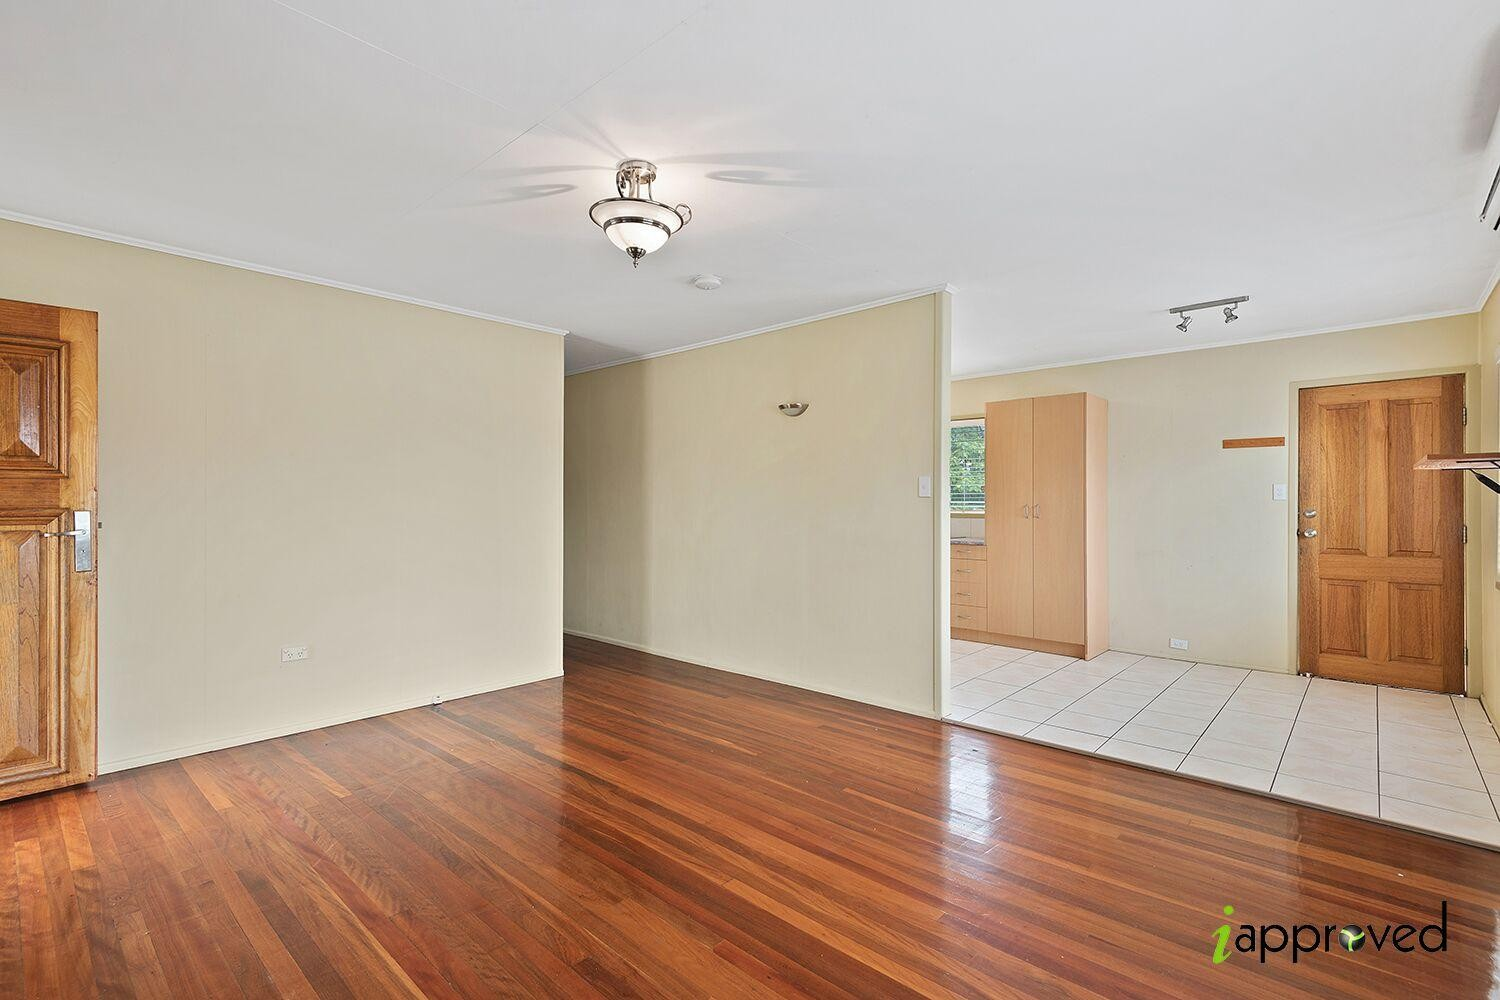 Property capalaba id 39 for The family room capalaba